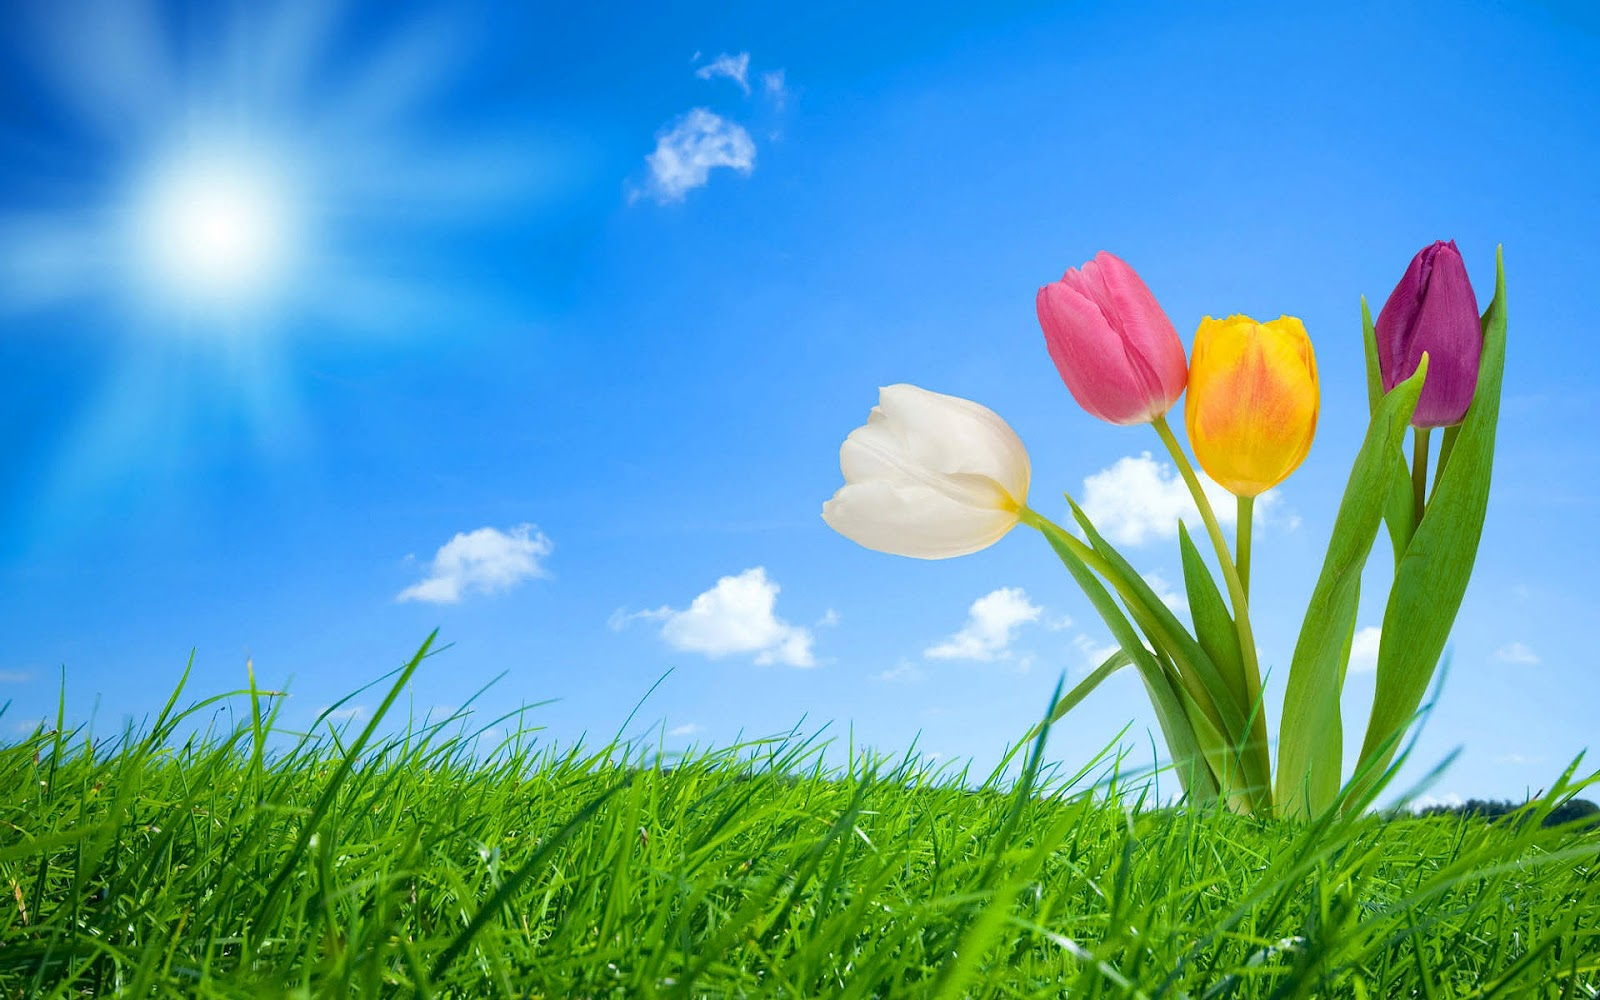 spring pictures for desktop | Best-top-desktop-spring-wallpapers